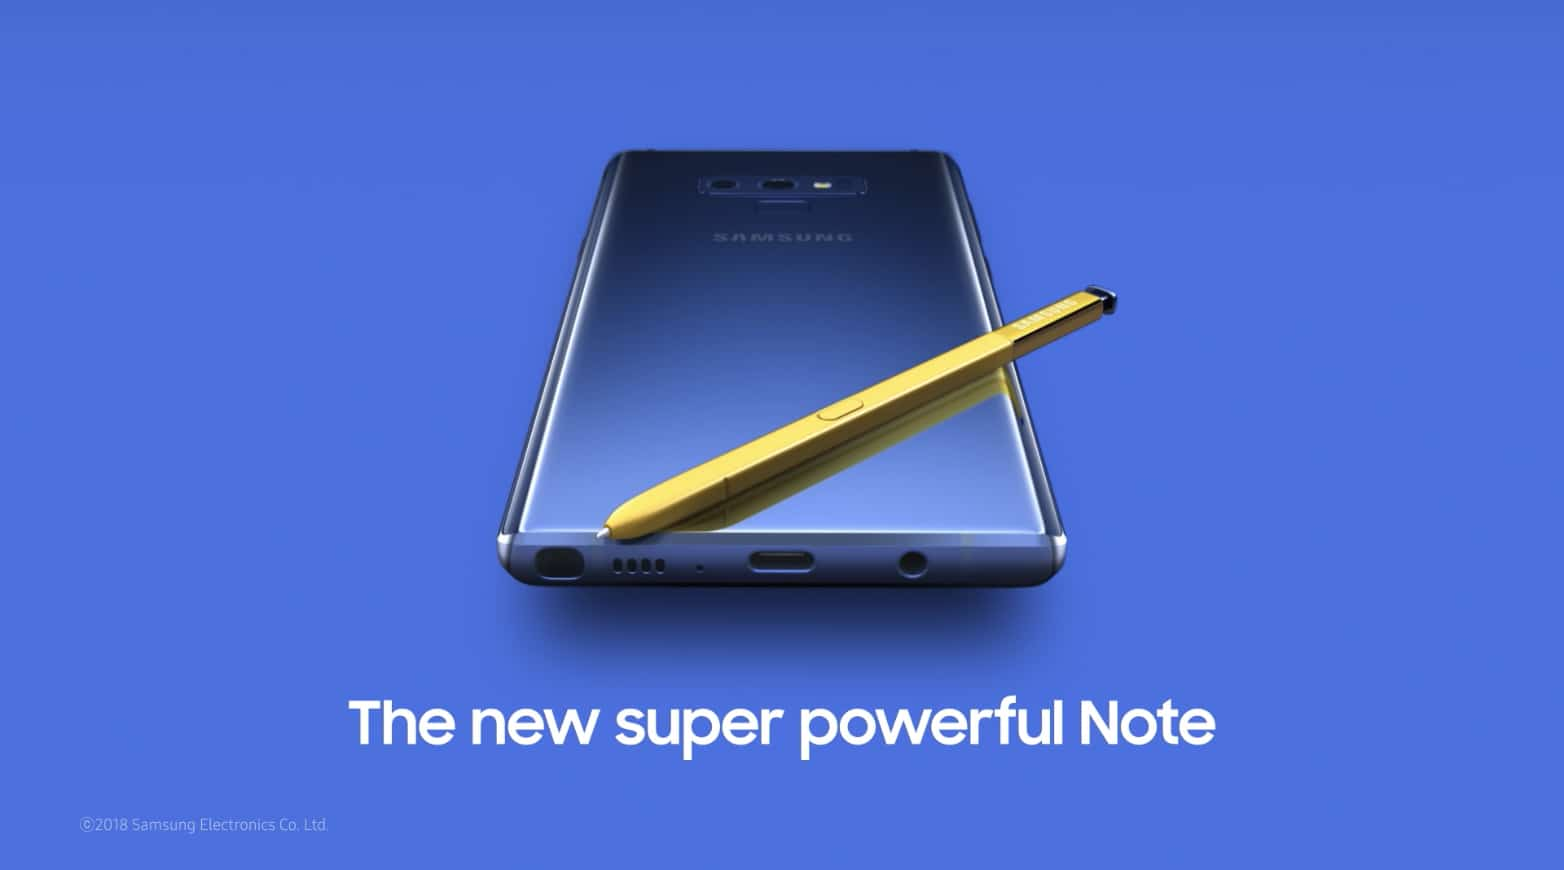 Samsung leaks Galaxy Note 9 early